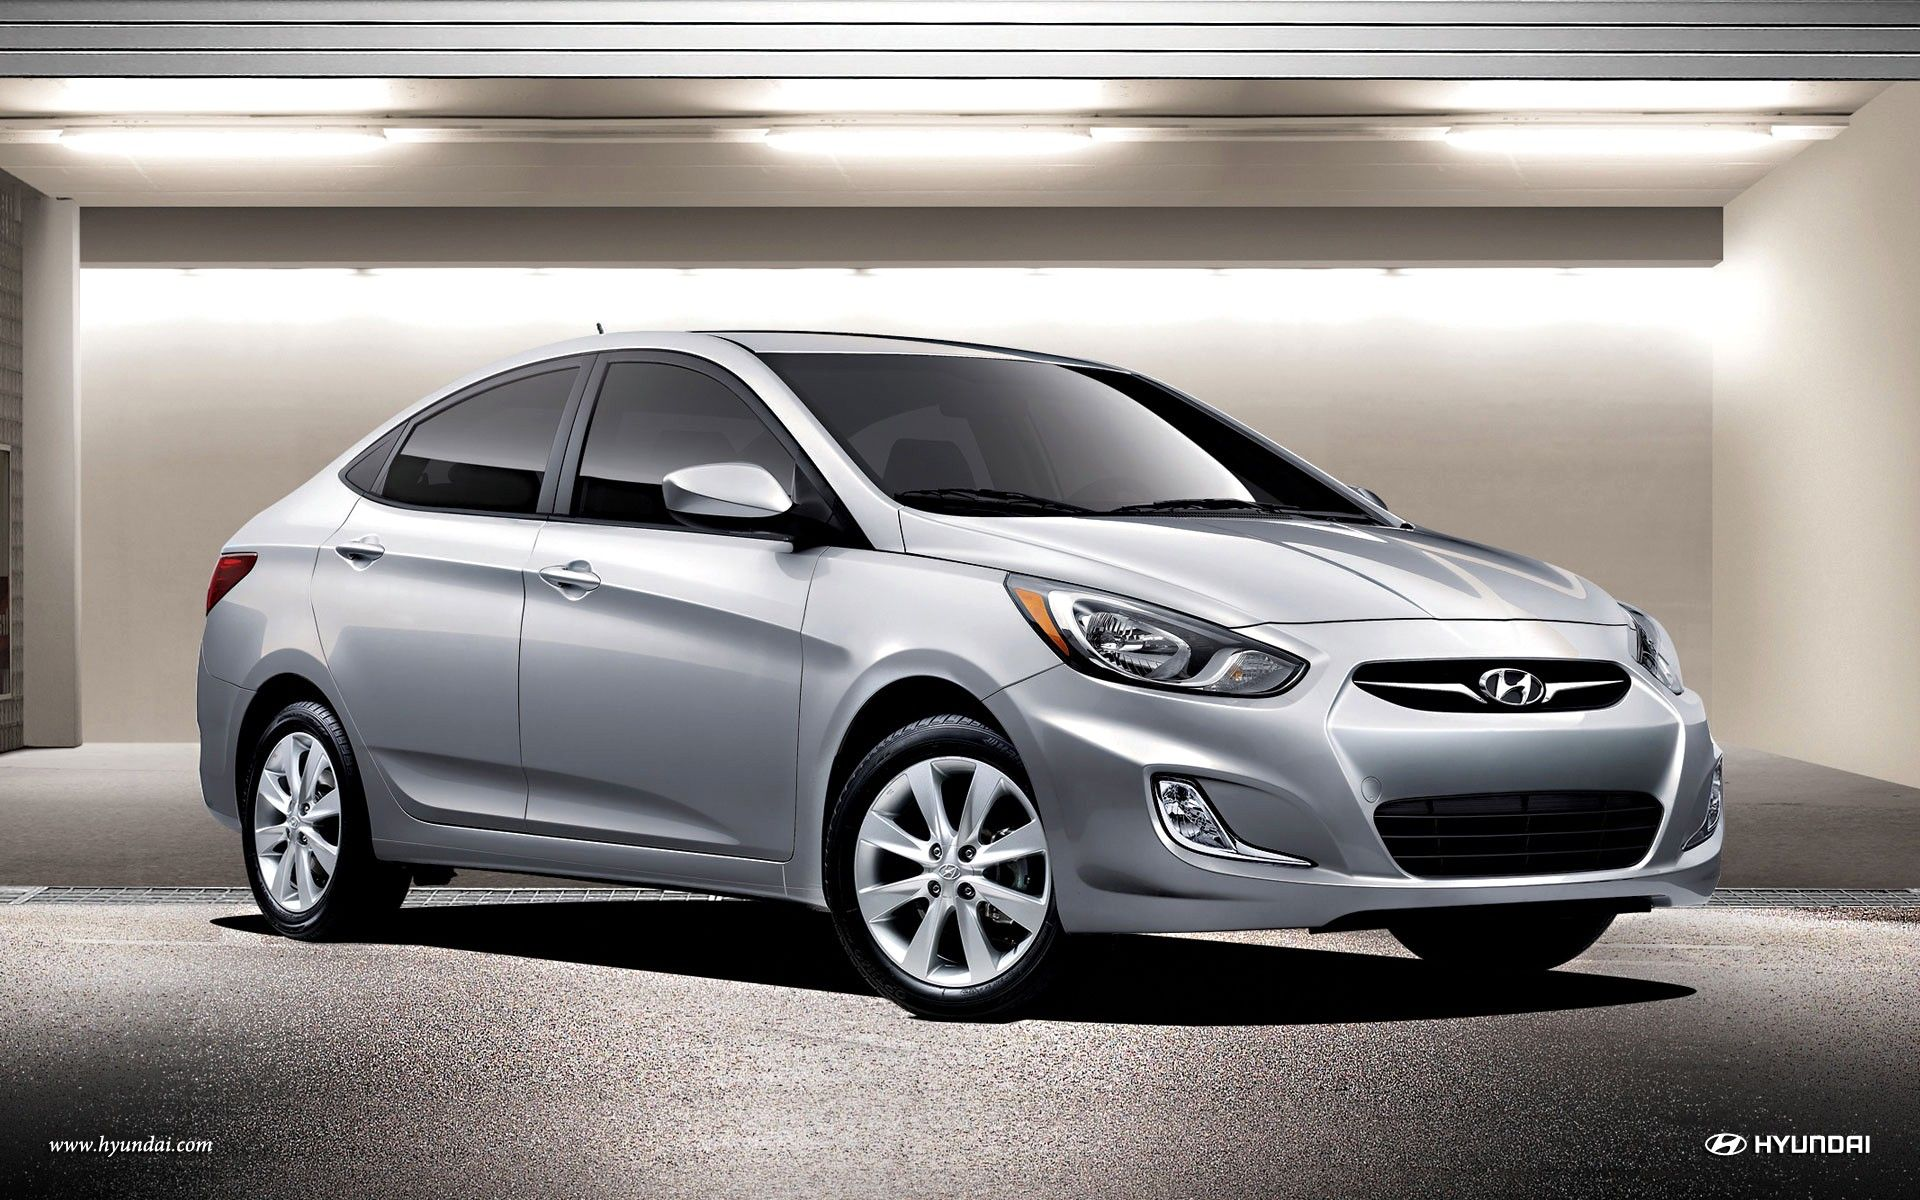 used cars hyundai for fields active accent blue essendon sale in